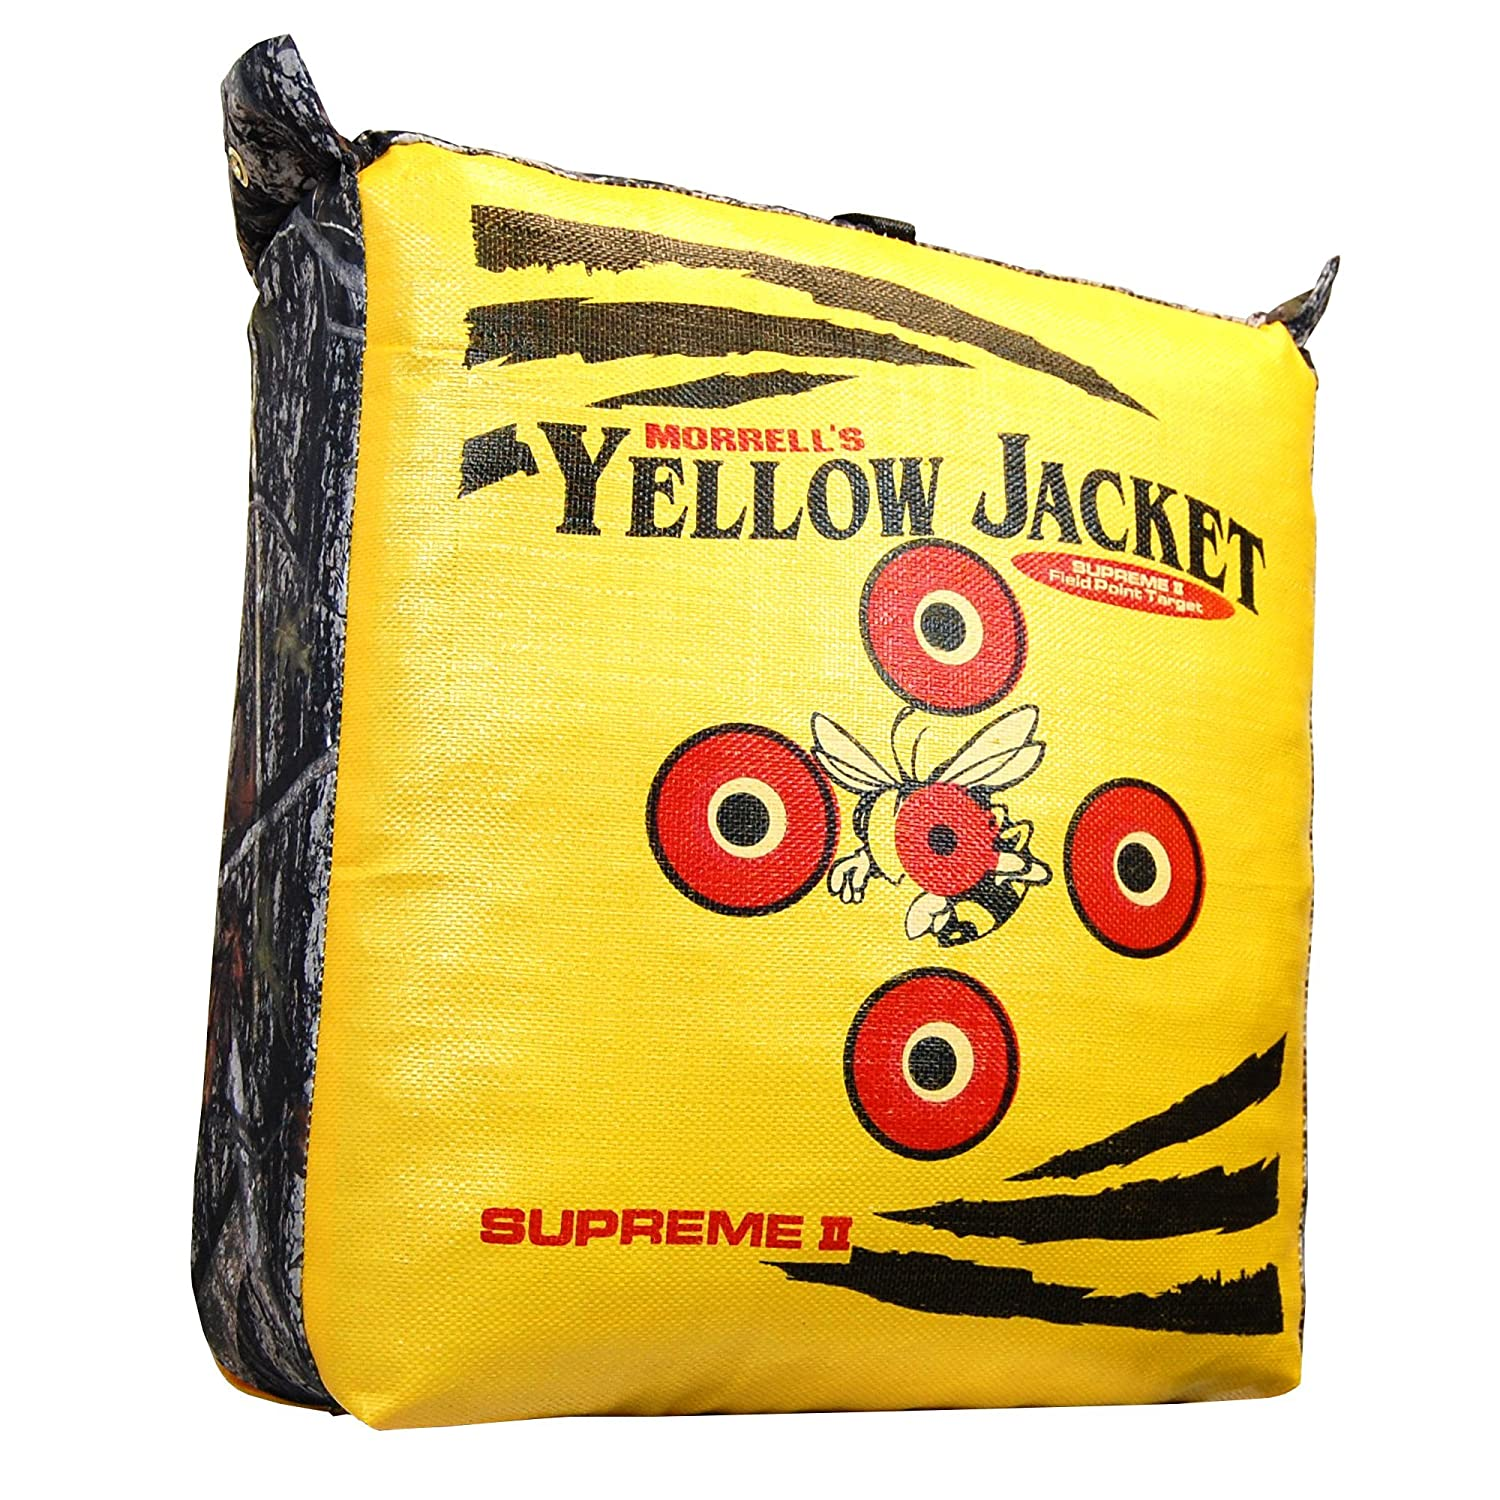 Morrell Yellow Jacket F/P Bag Target